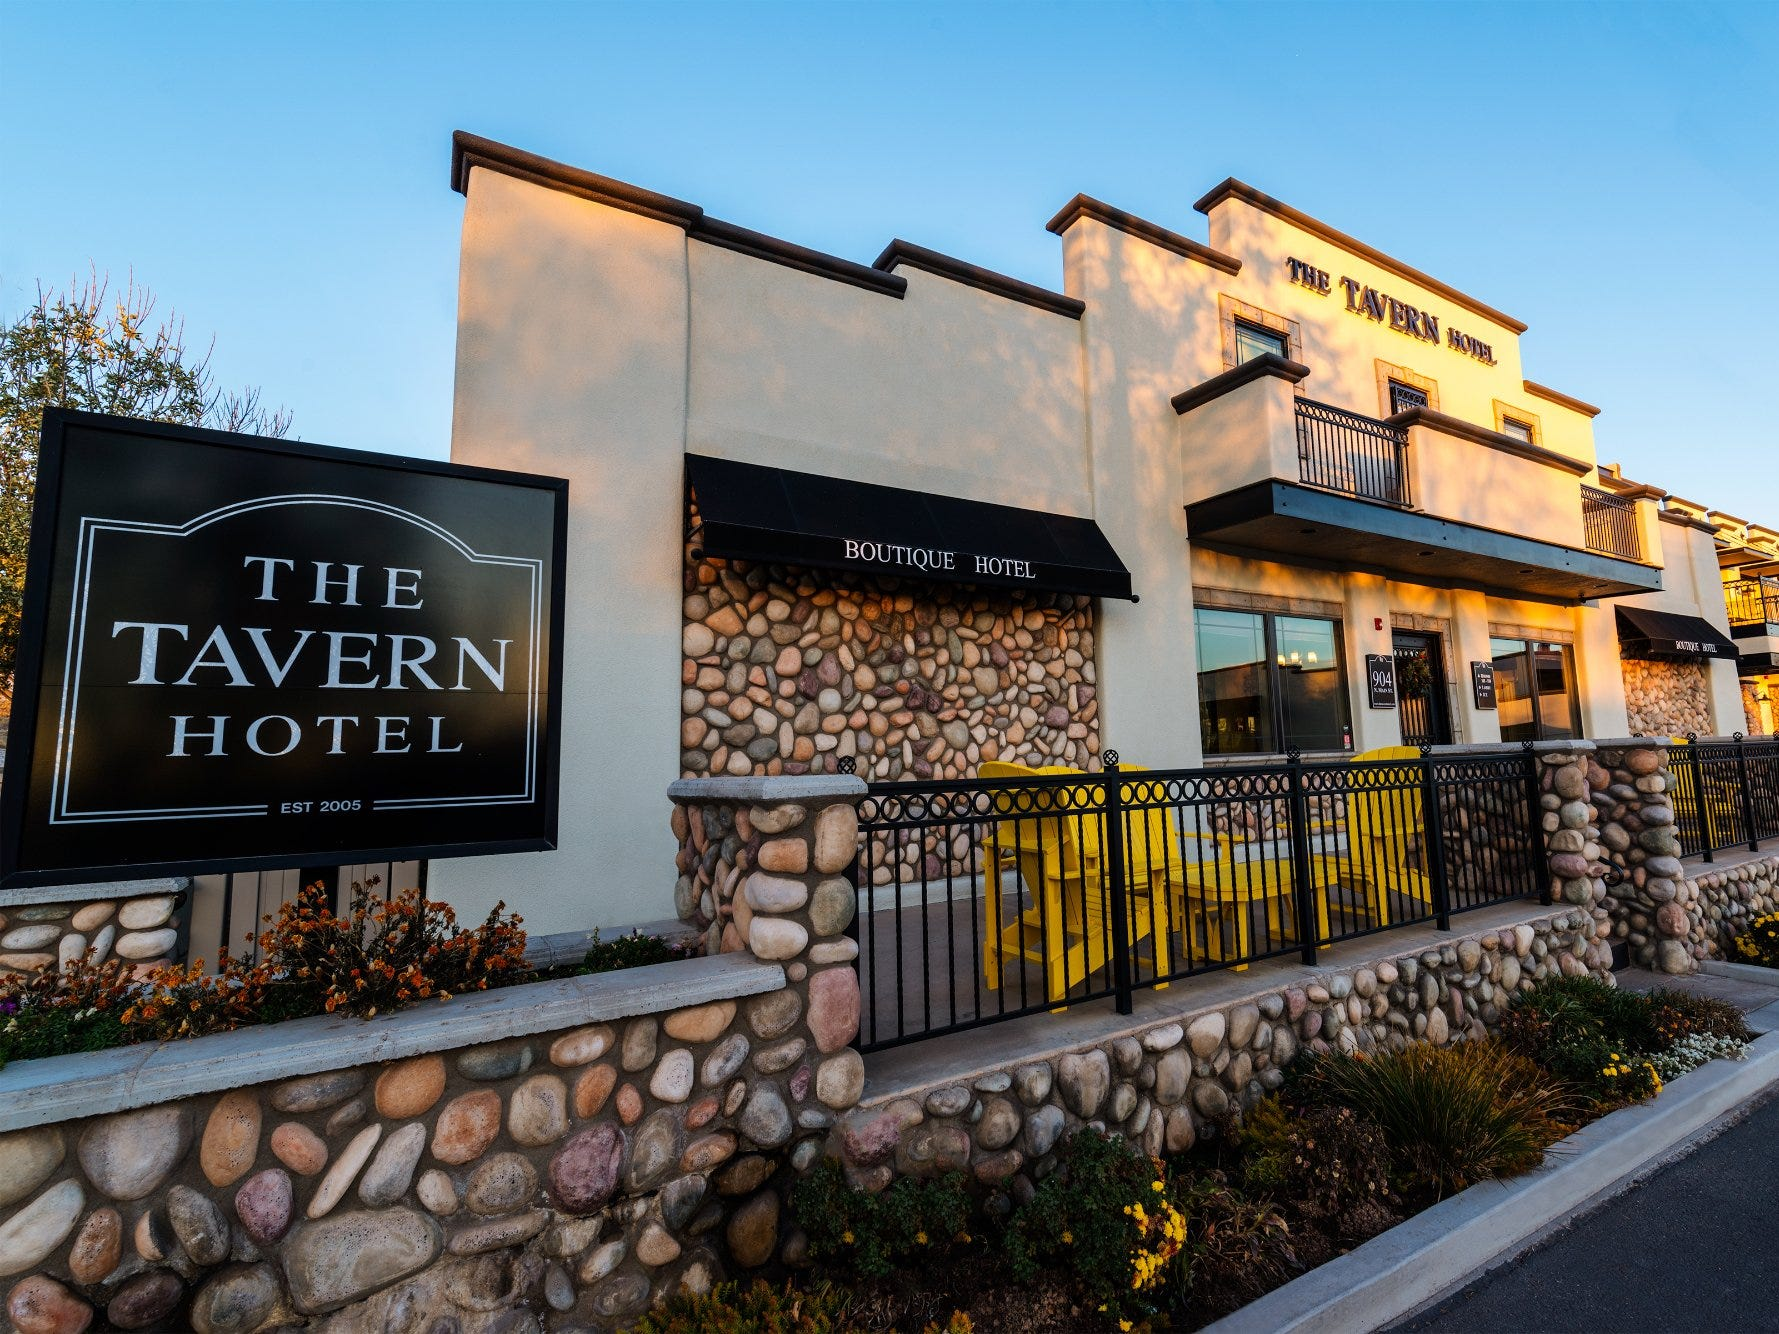 No. 13: The Tavern Hotel in Cottonwood, Arizona.